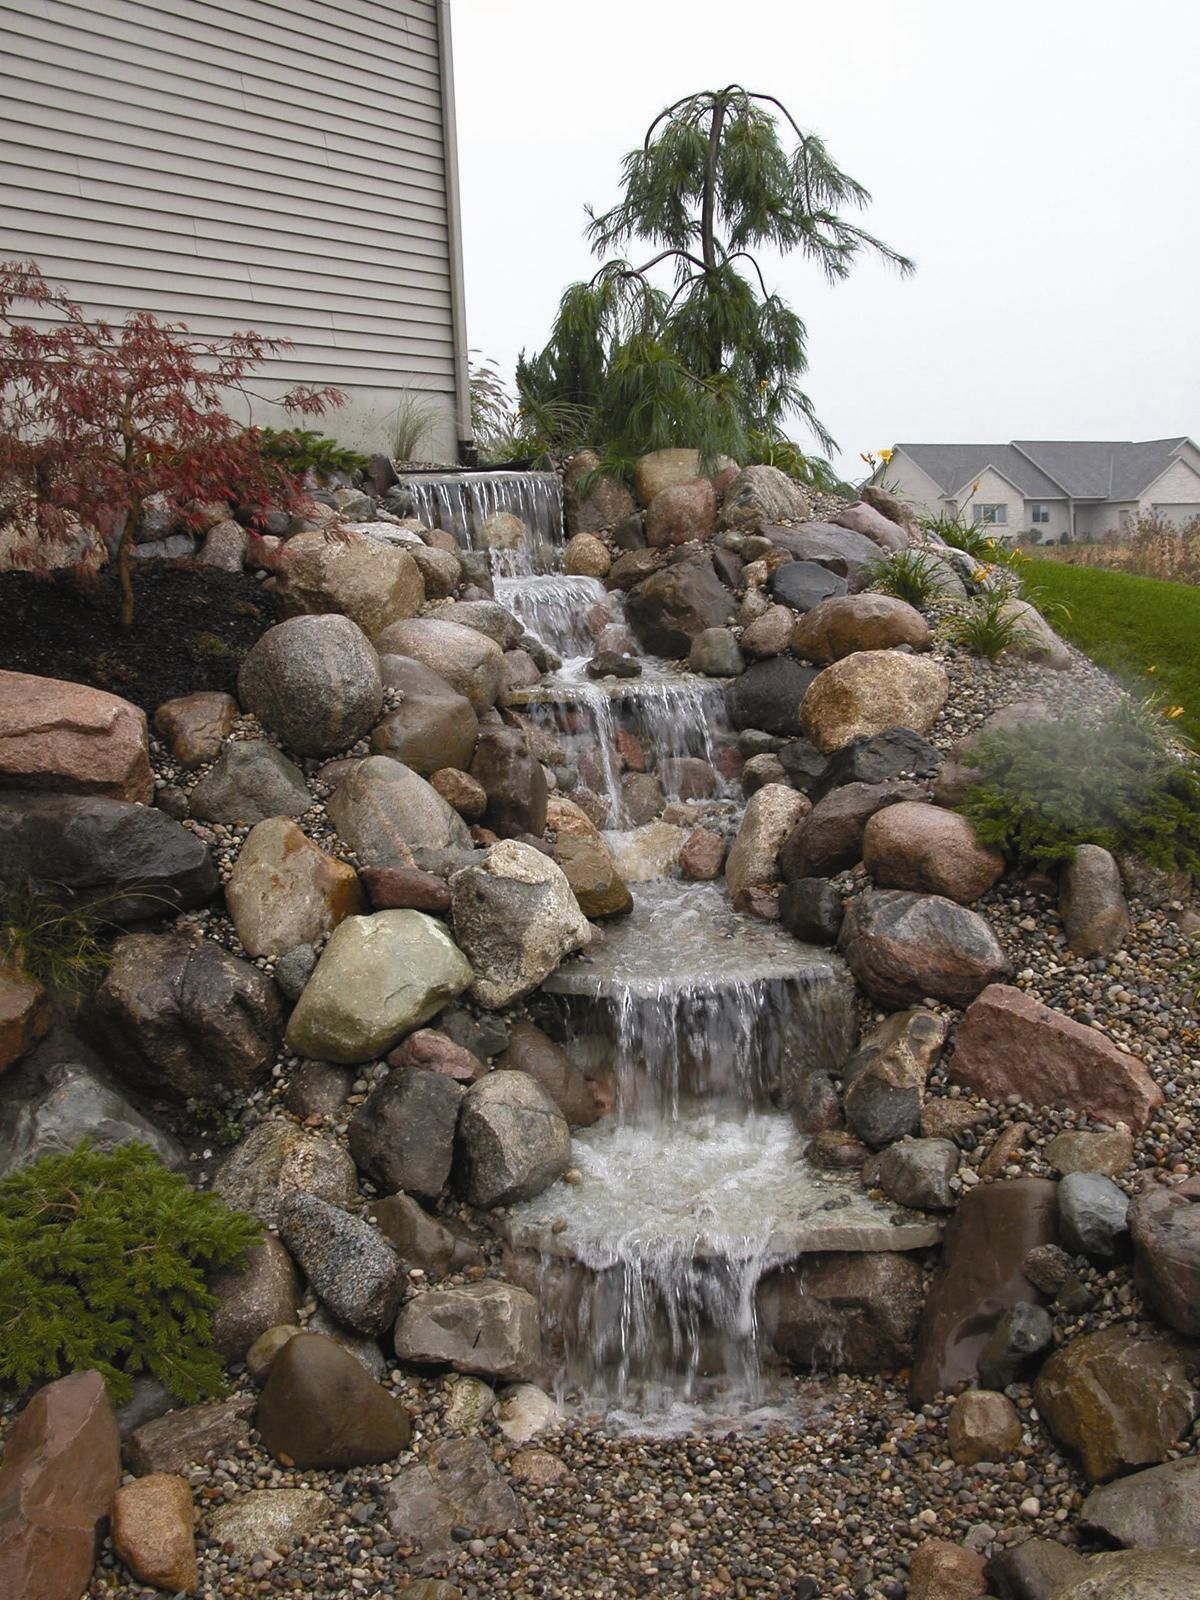 Diy Small Backyard Water Feature Ideas | Mystical Designs ... on Small Backyard Water Features id=66823